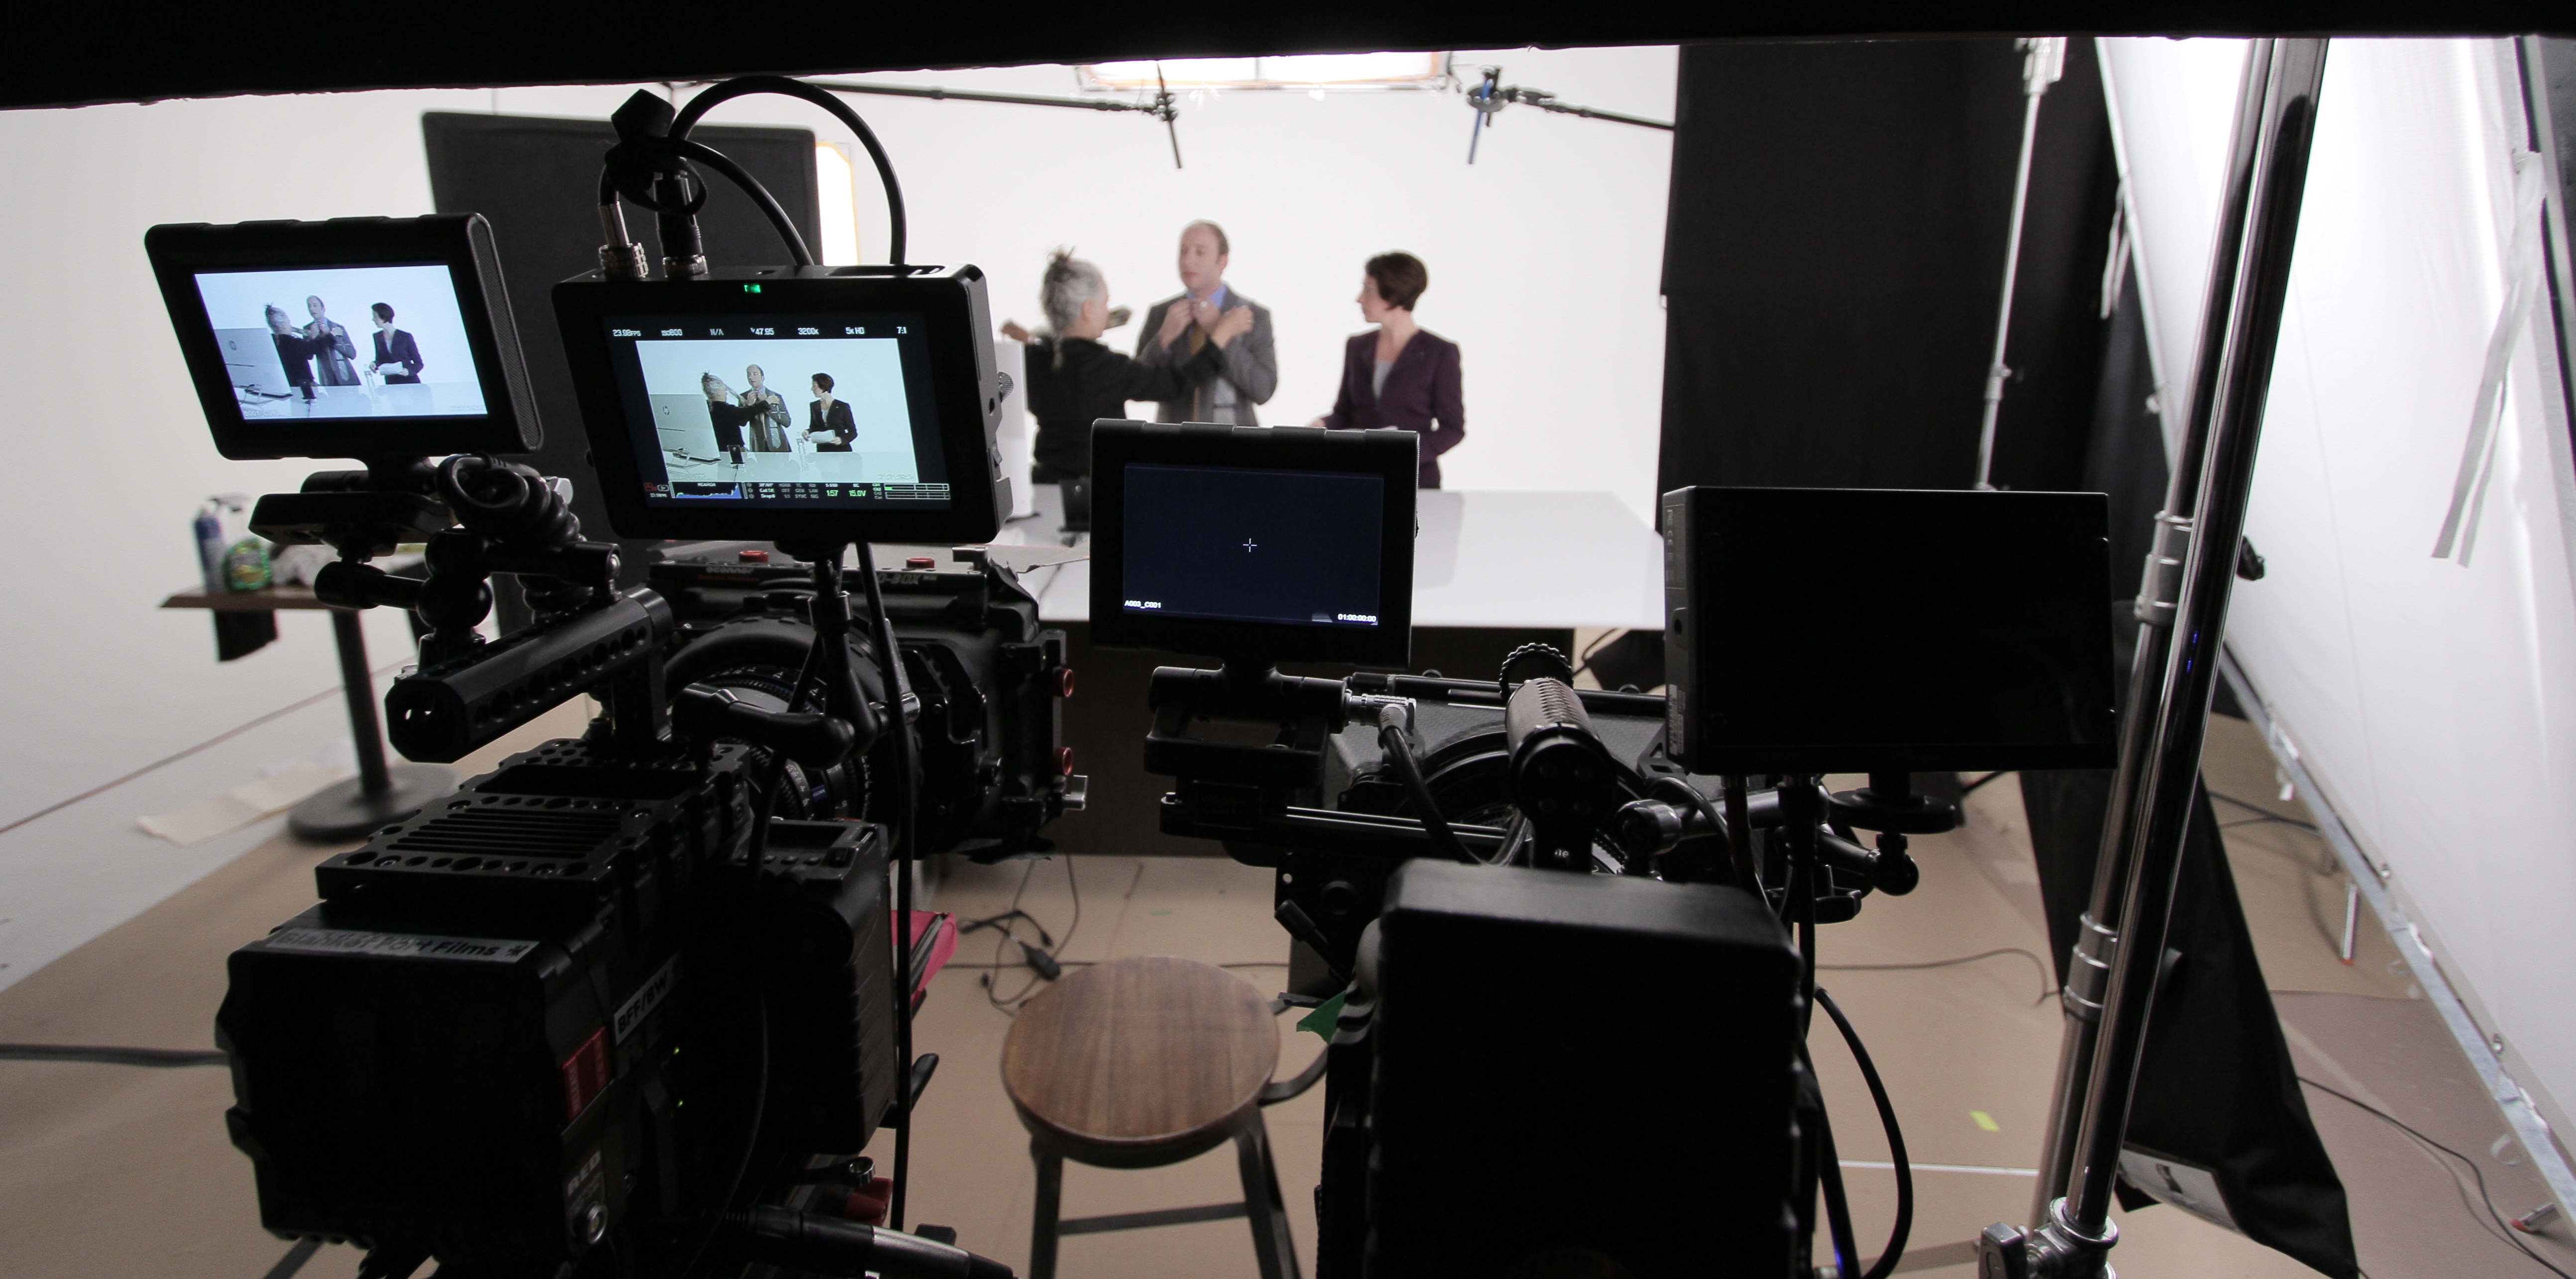 Video production studio with 2 actors and wardrobe in front of cameras